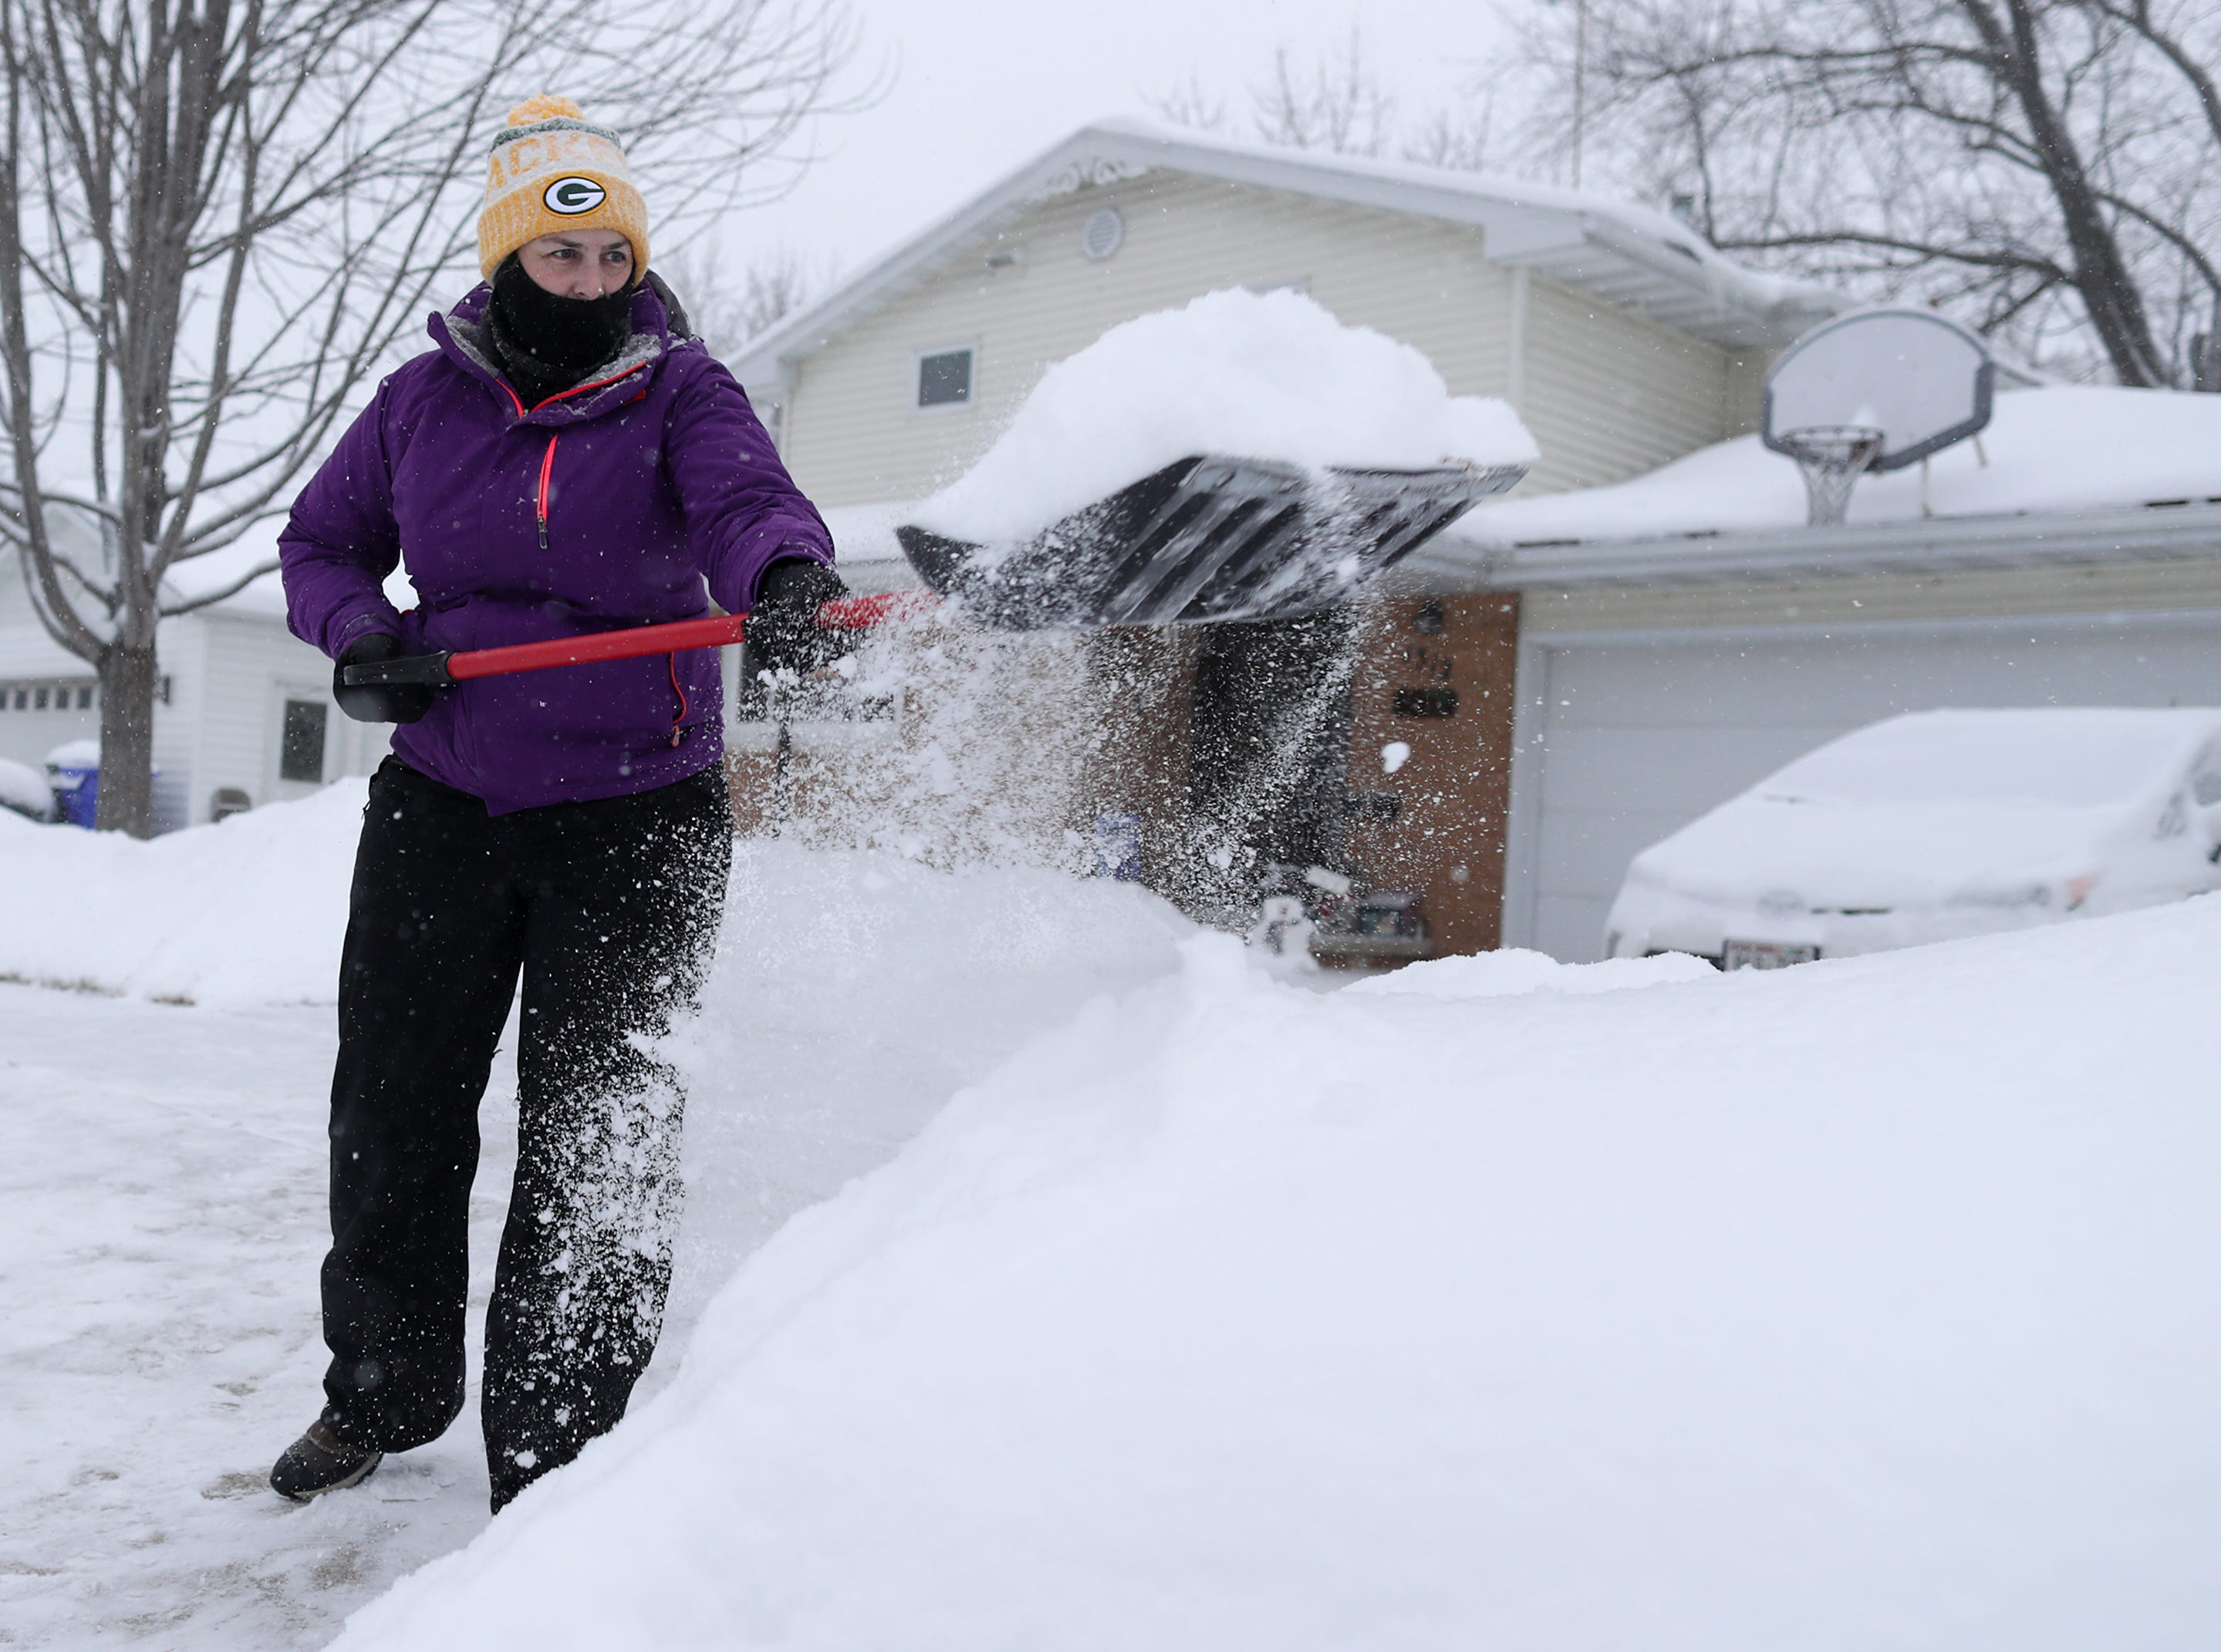 Kris Kandler shovels during a winter storm in Wisconsin on Monday, January 28, 2019, in Kaukauna, Wis.